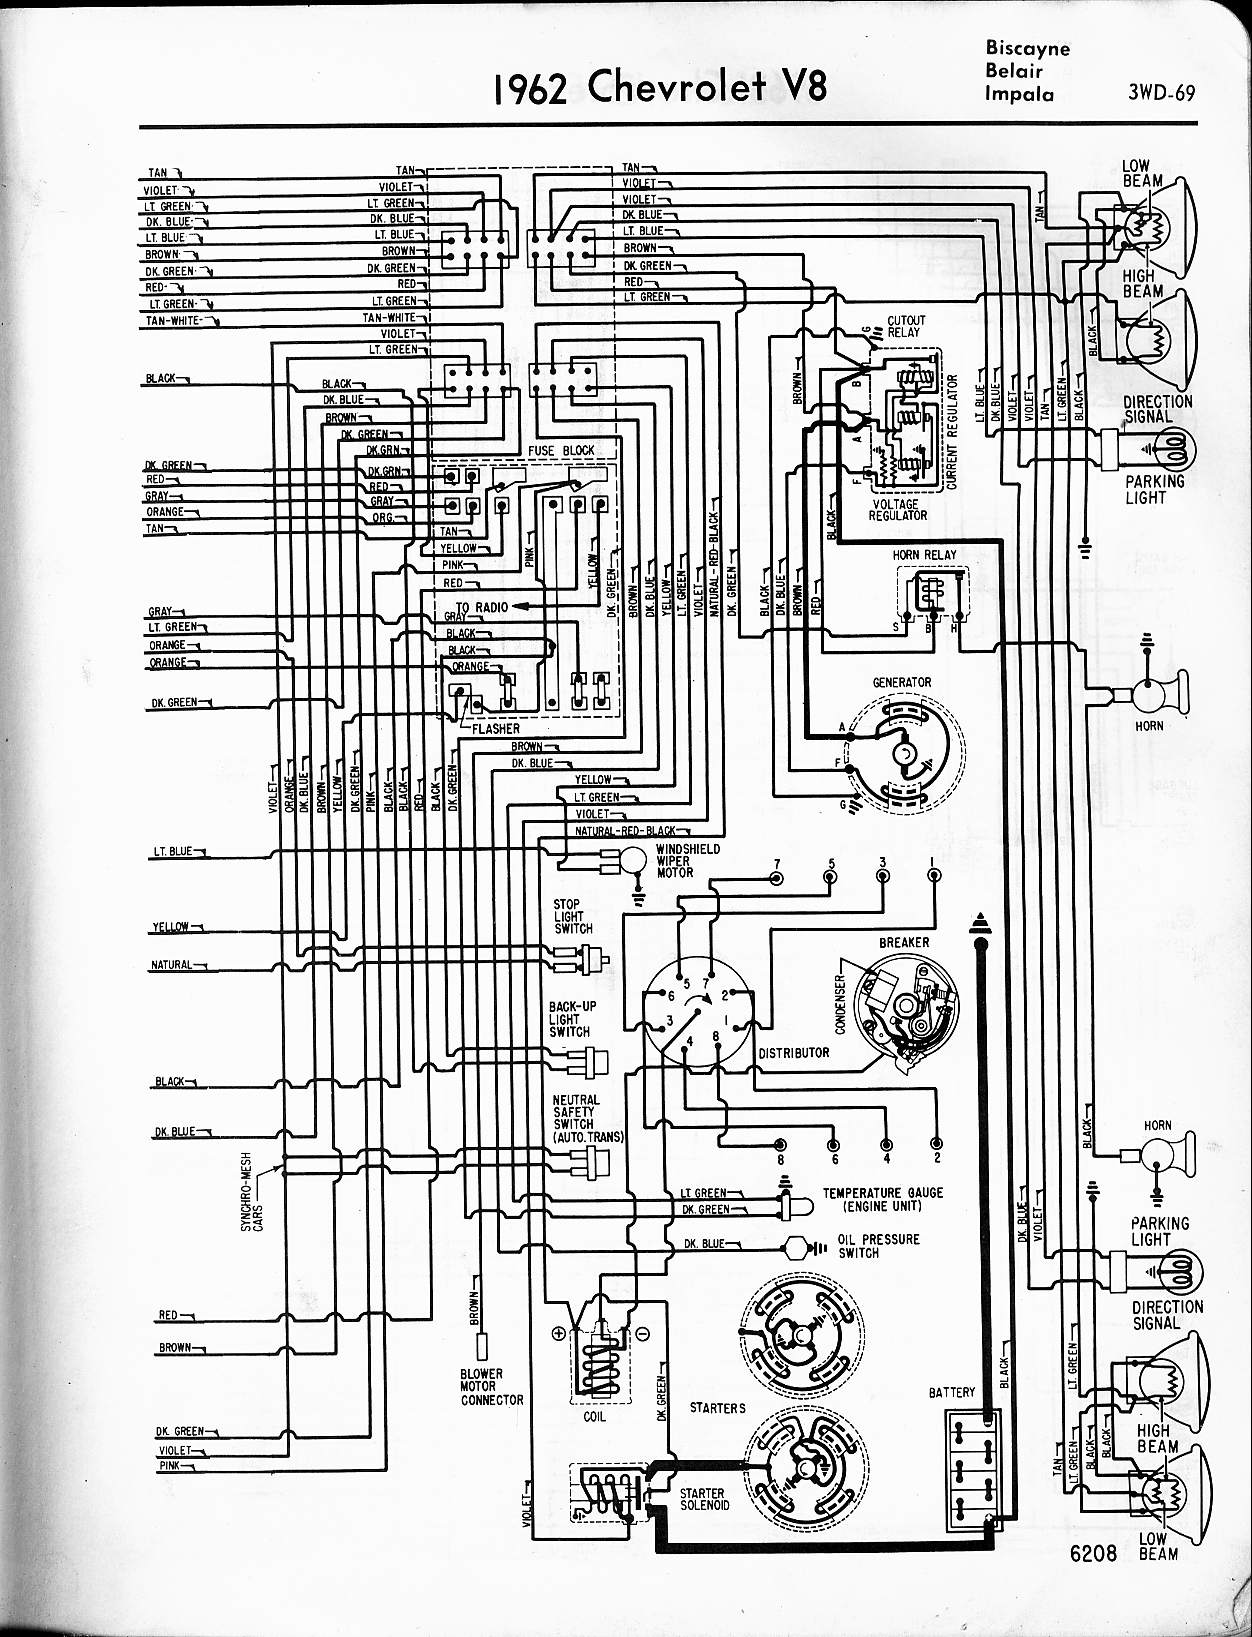 57 65 Chevy Wiring Diagrams Site 1962 V8 Biscayne Belair Impala Right